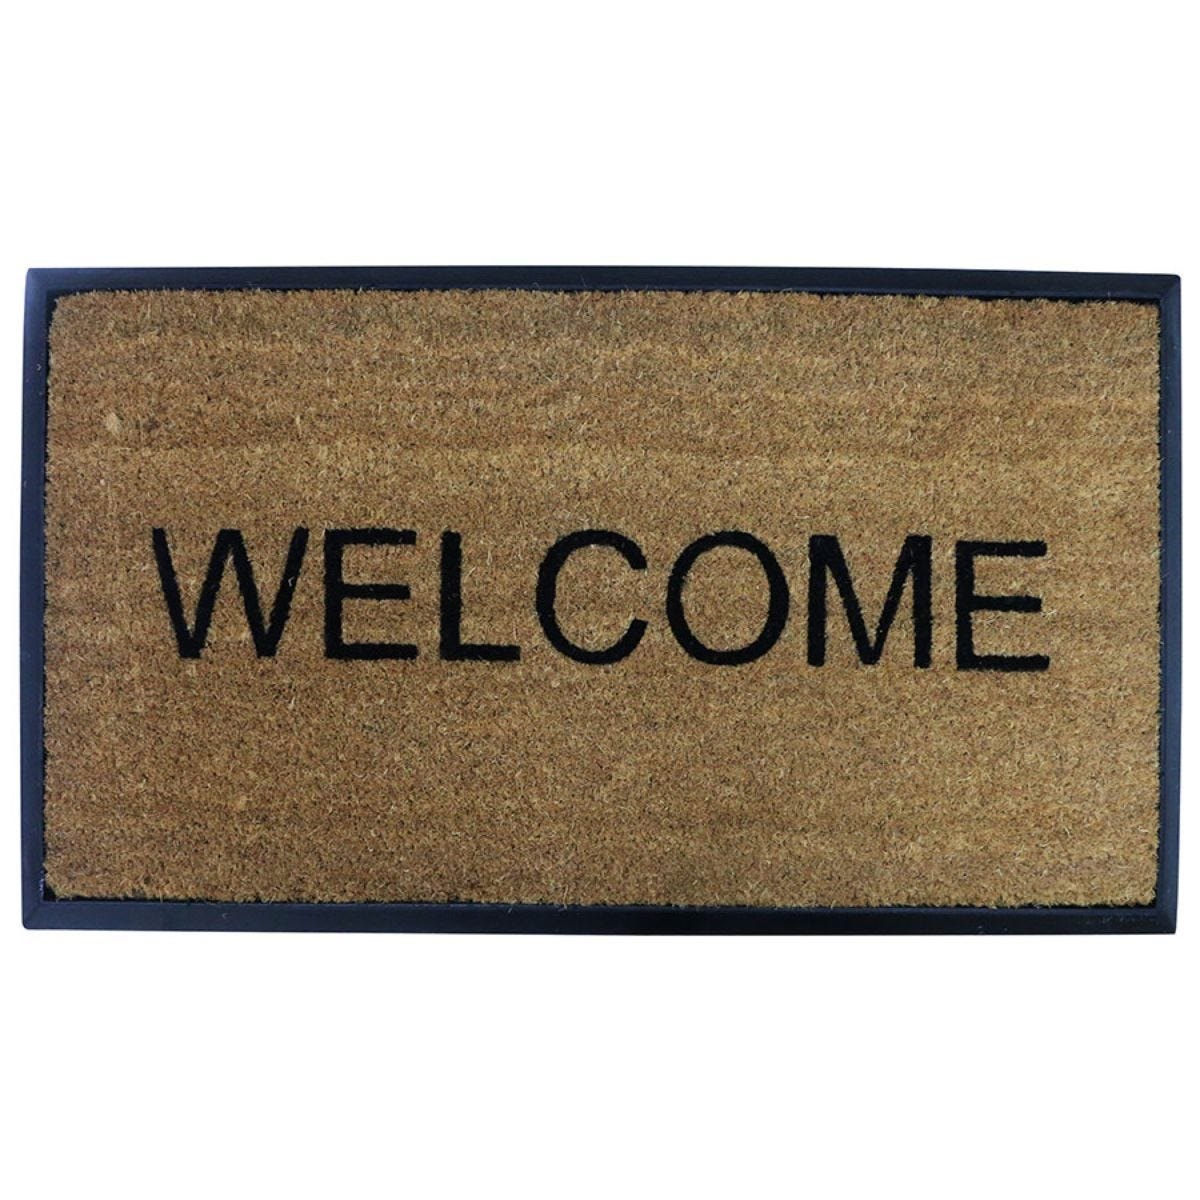 Pride of Place 40 x 70cm Coir Heavy Duty Welcome Doormat - Natural